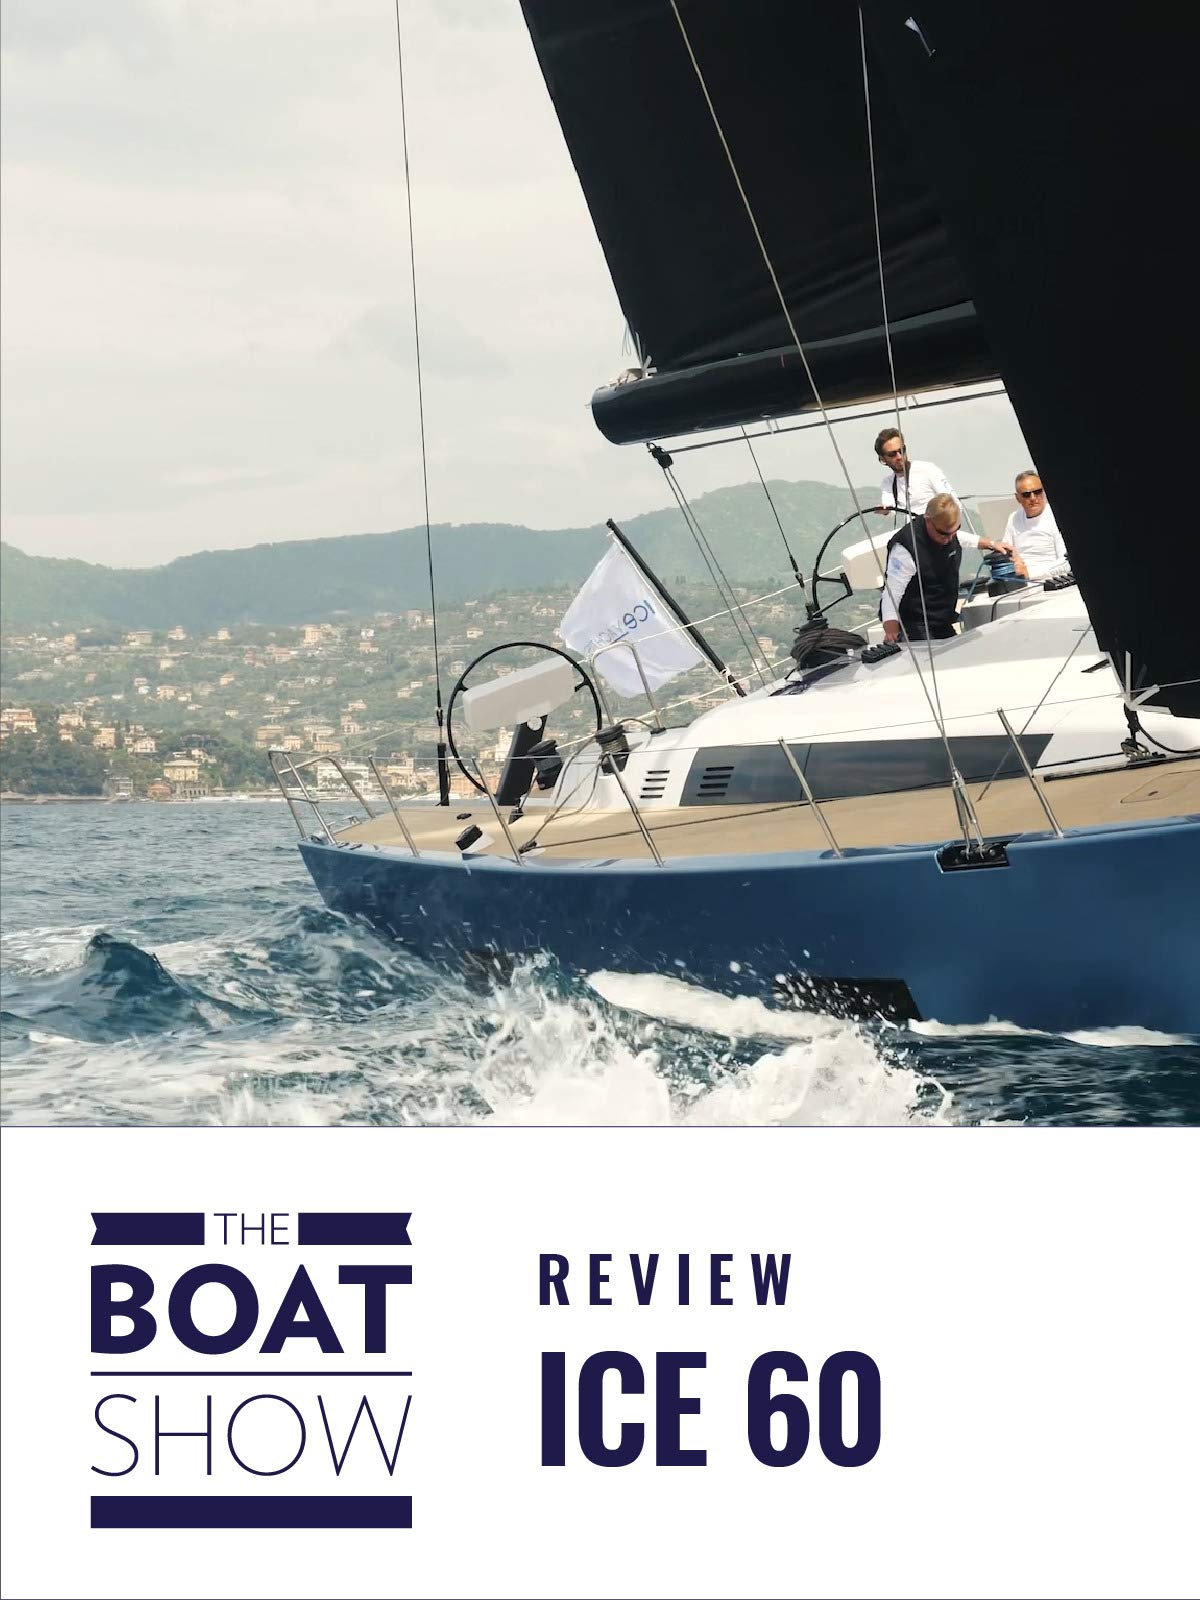 Ice 60 - The Boat Show